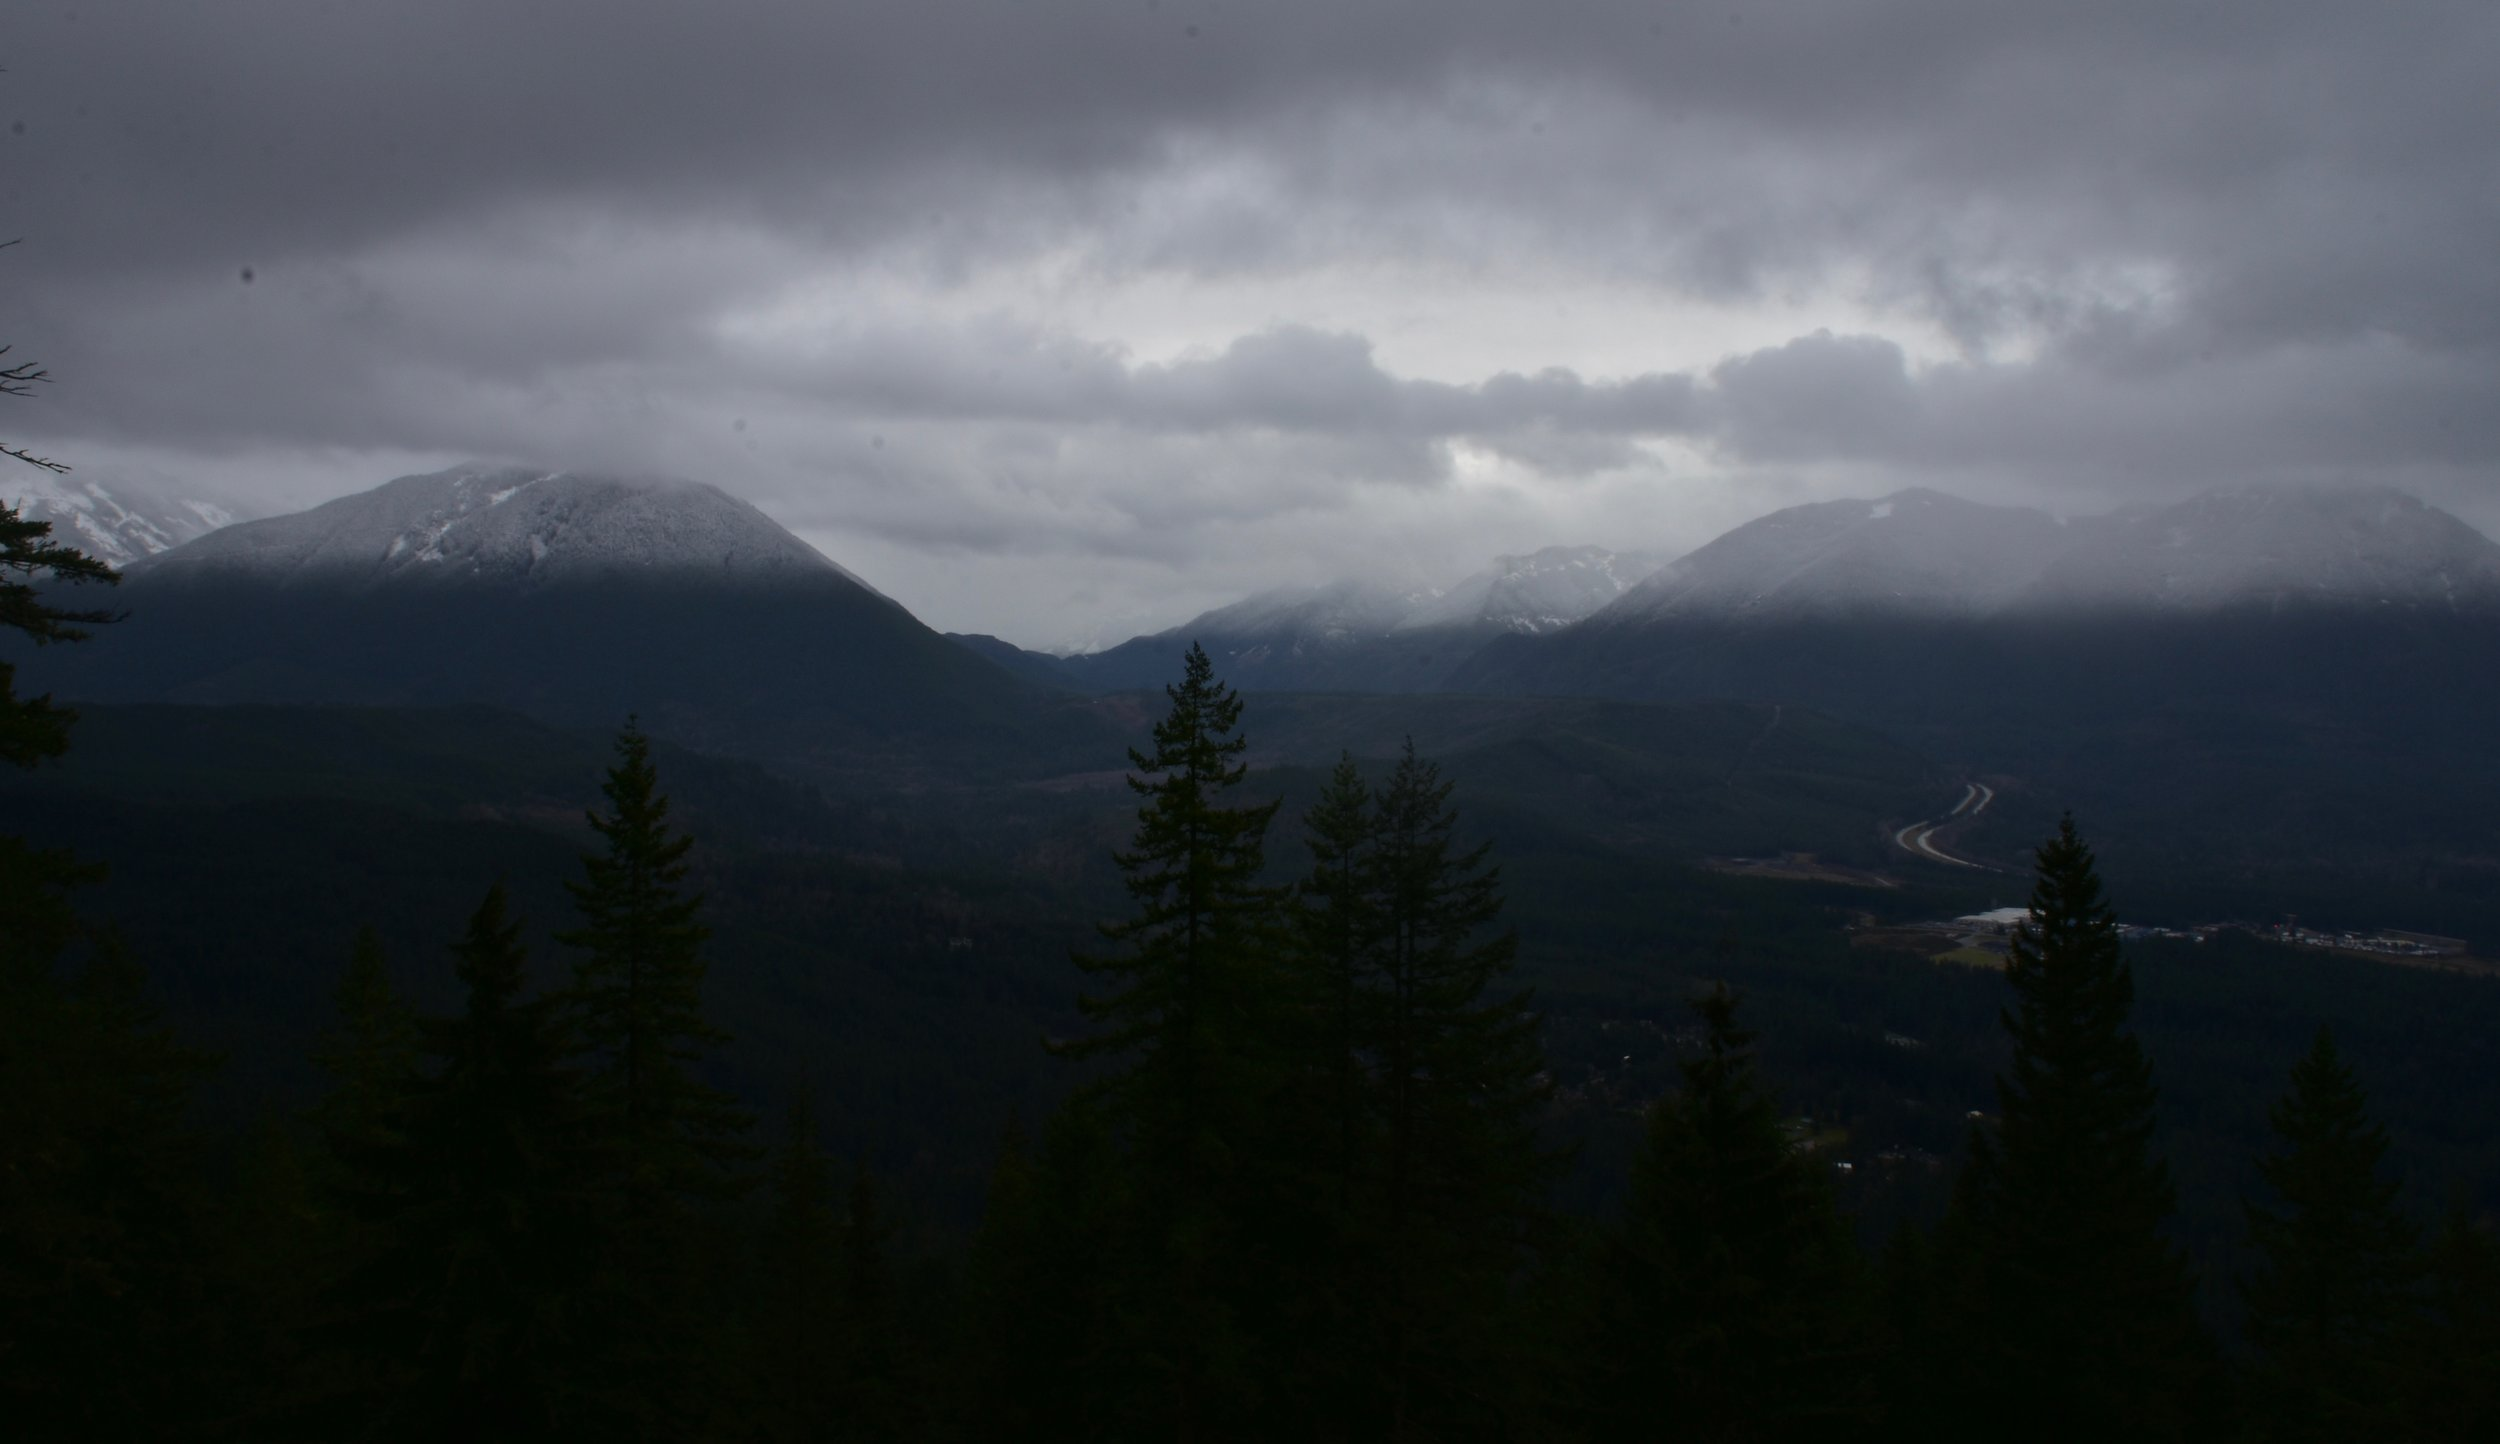 Looking over I-90 and under the clouds